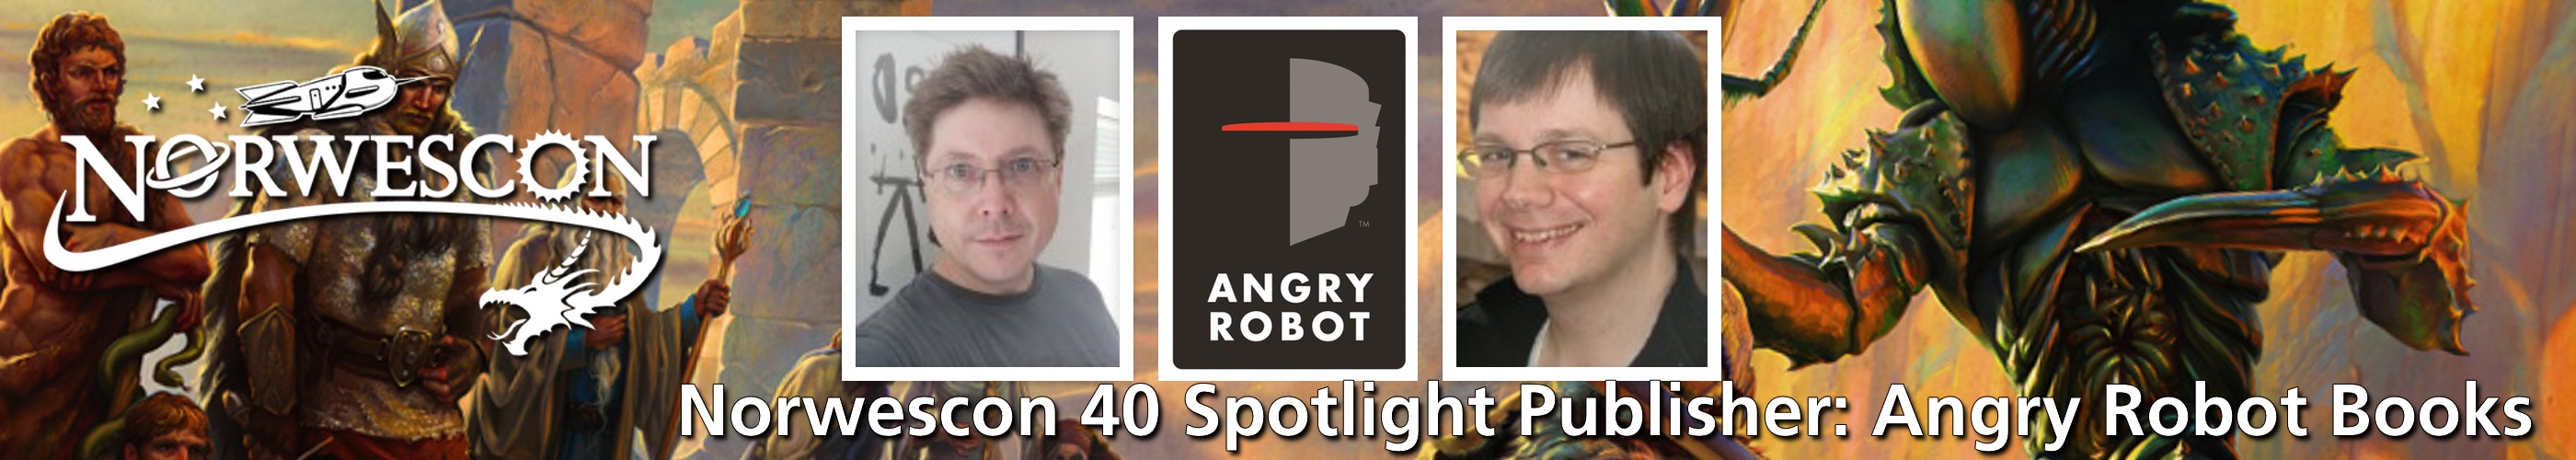 NWC40 Spotlight Publisher Angry Robot Books